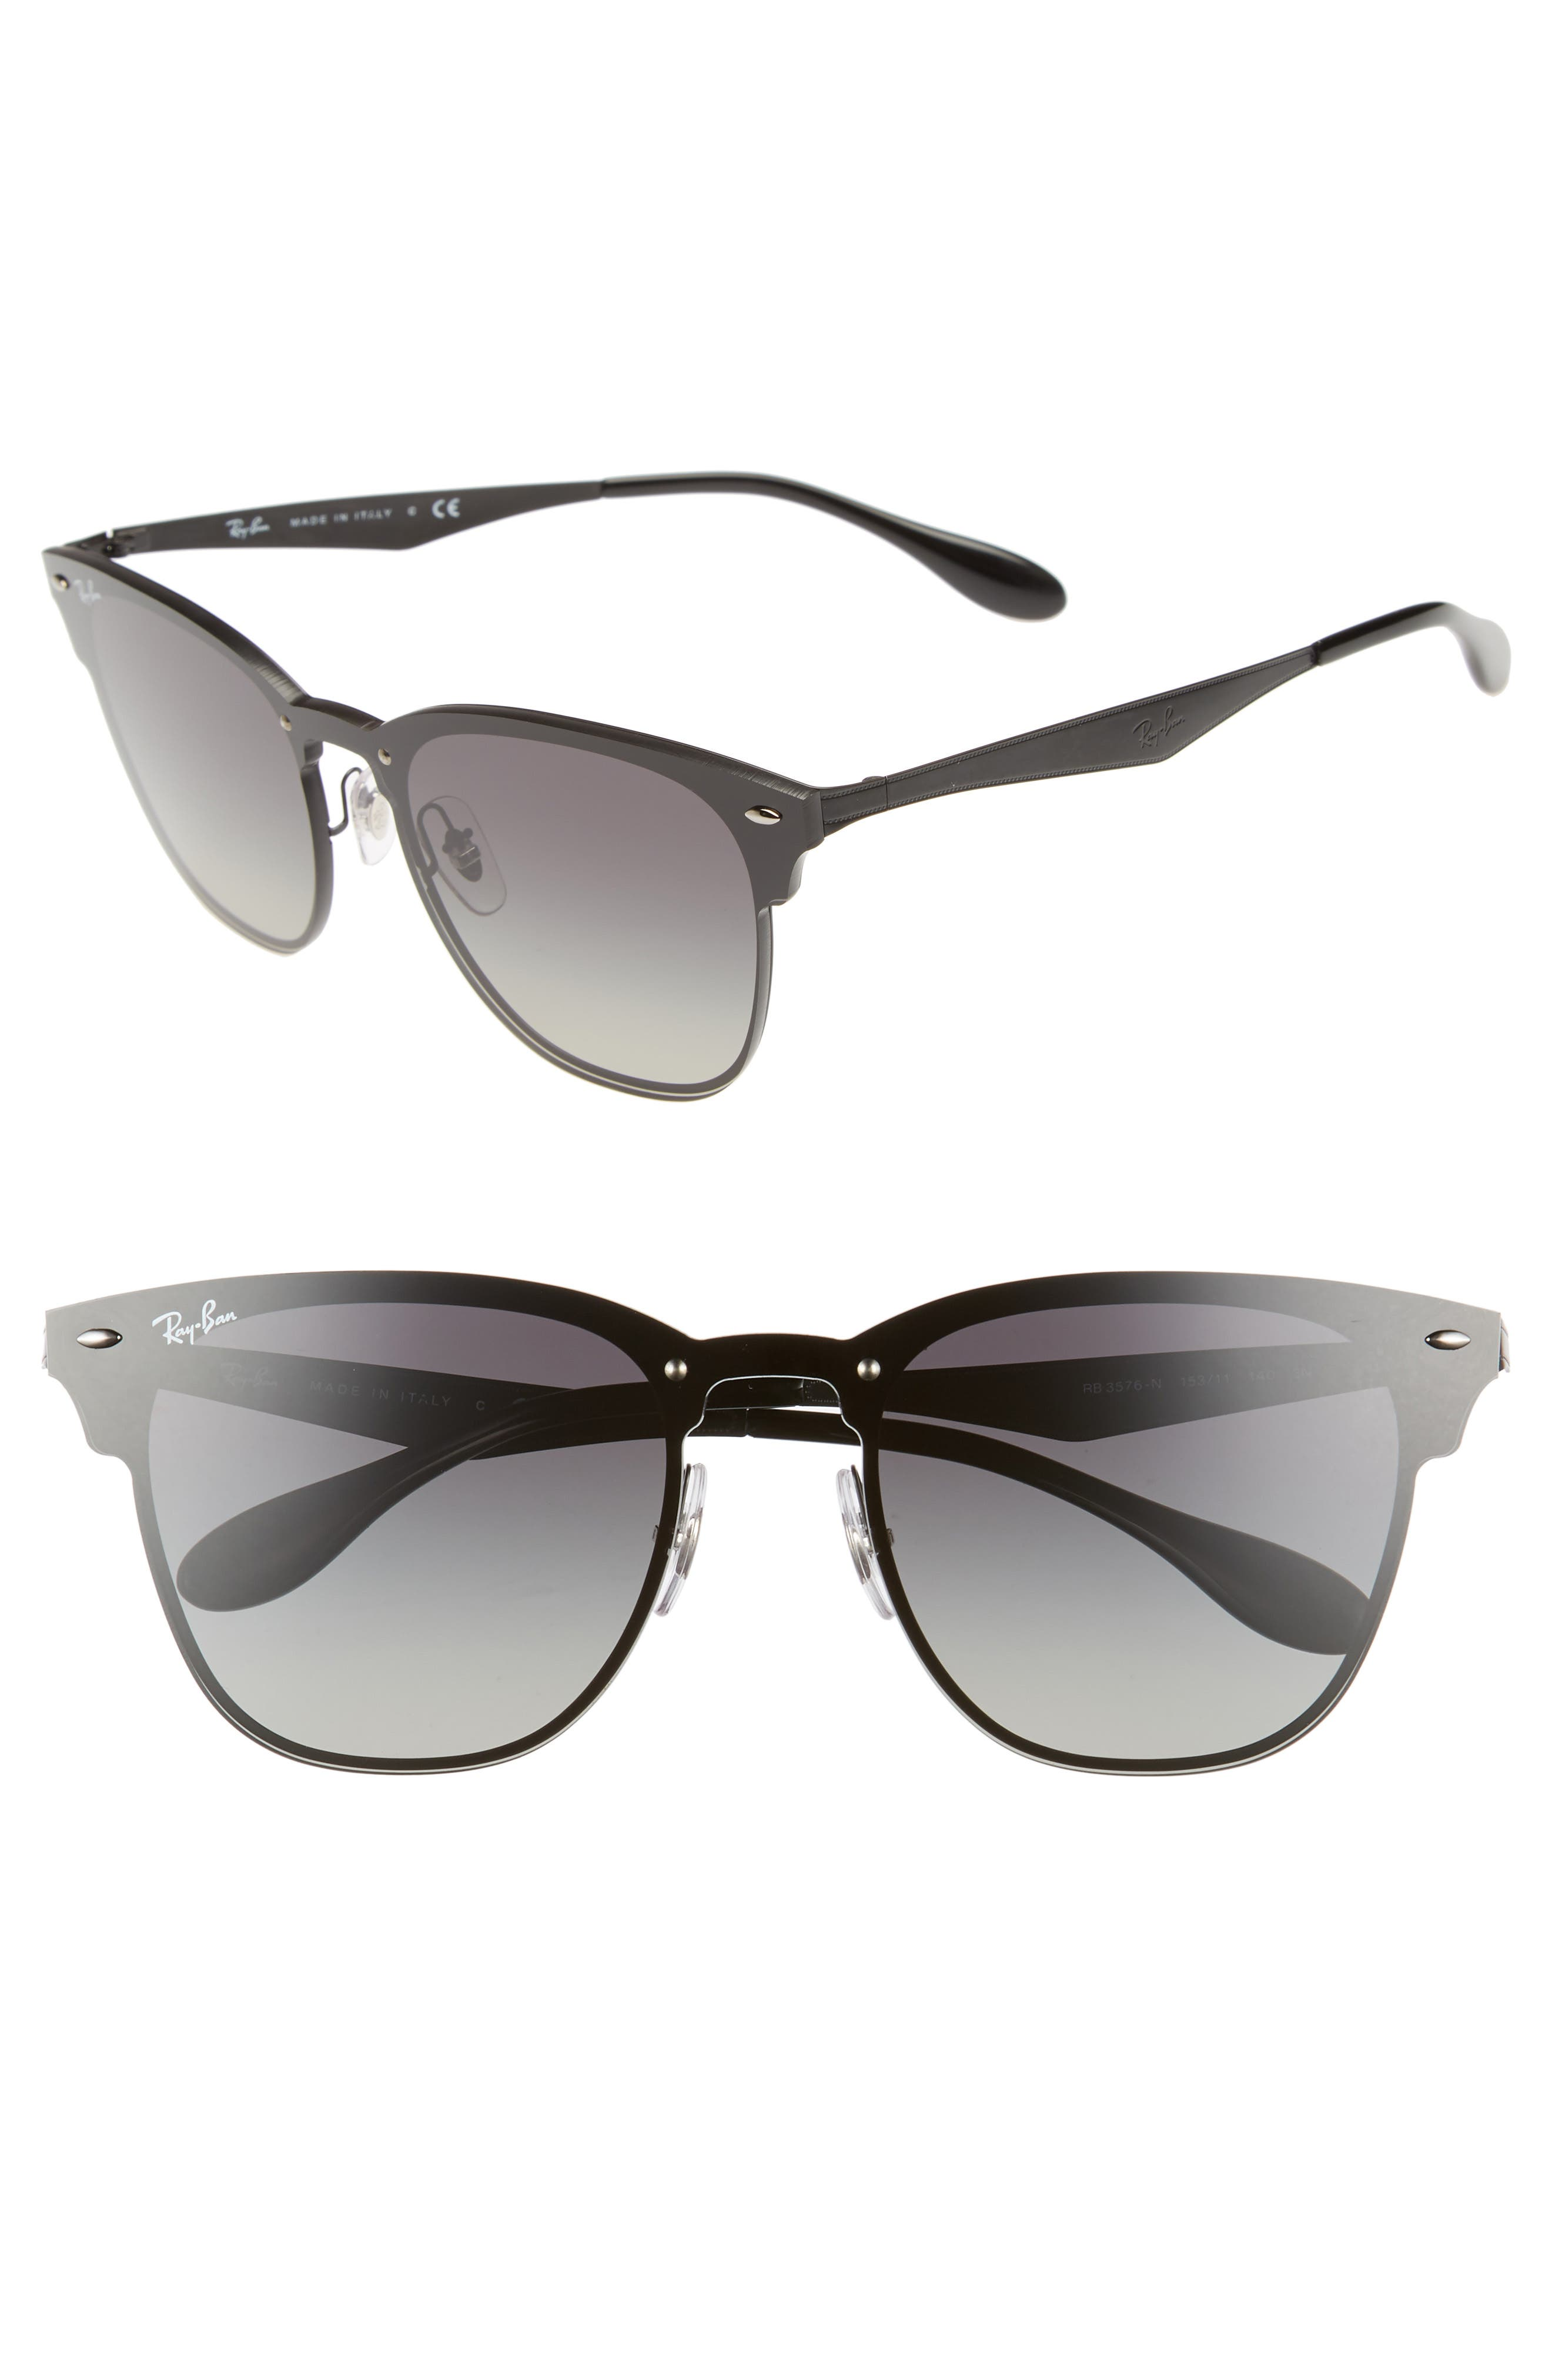 Blaze Clubmaster 47mm Sunglasses,                             Main thumbnail 1, color,